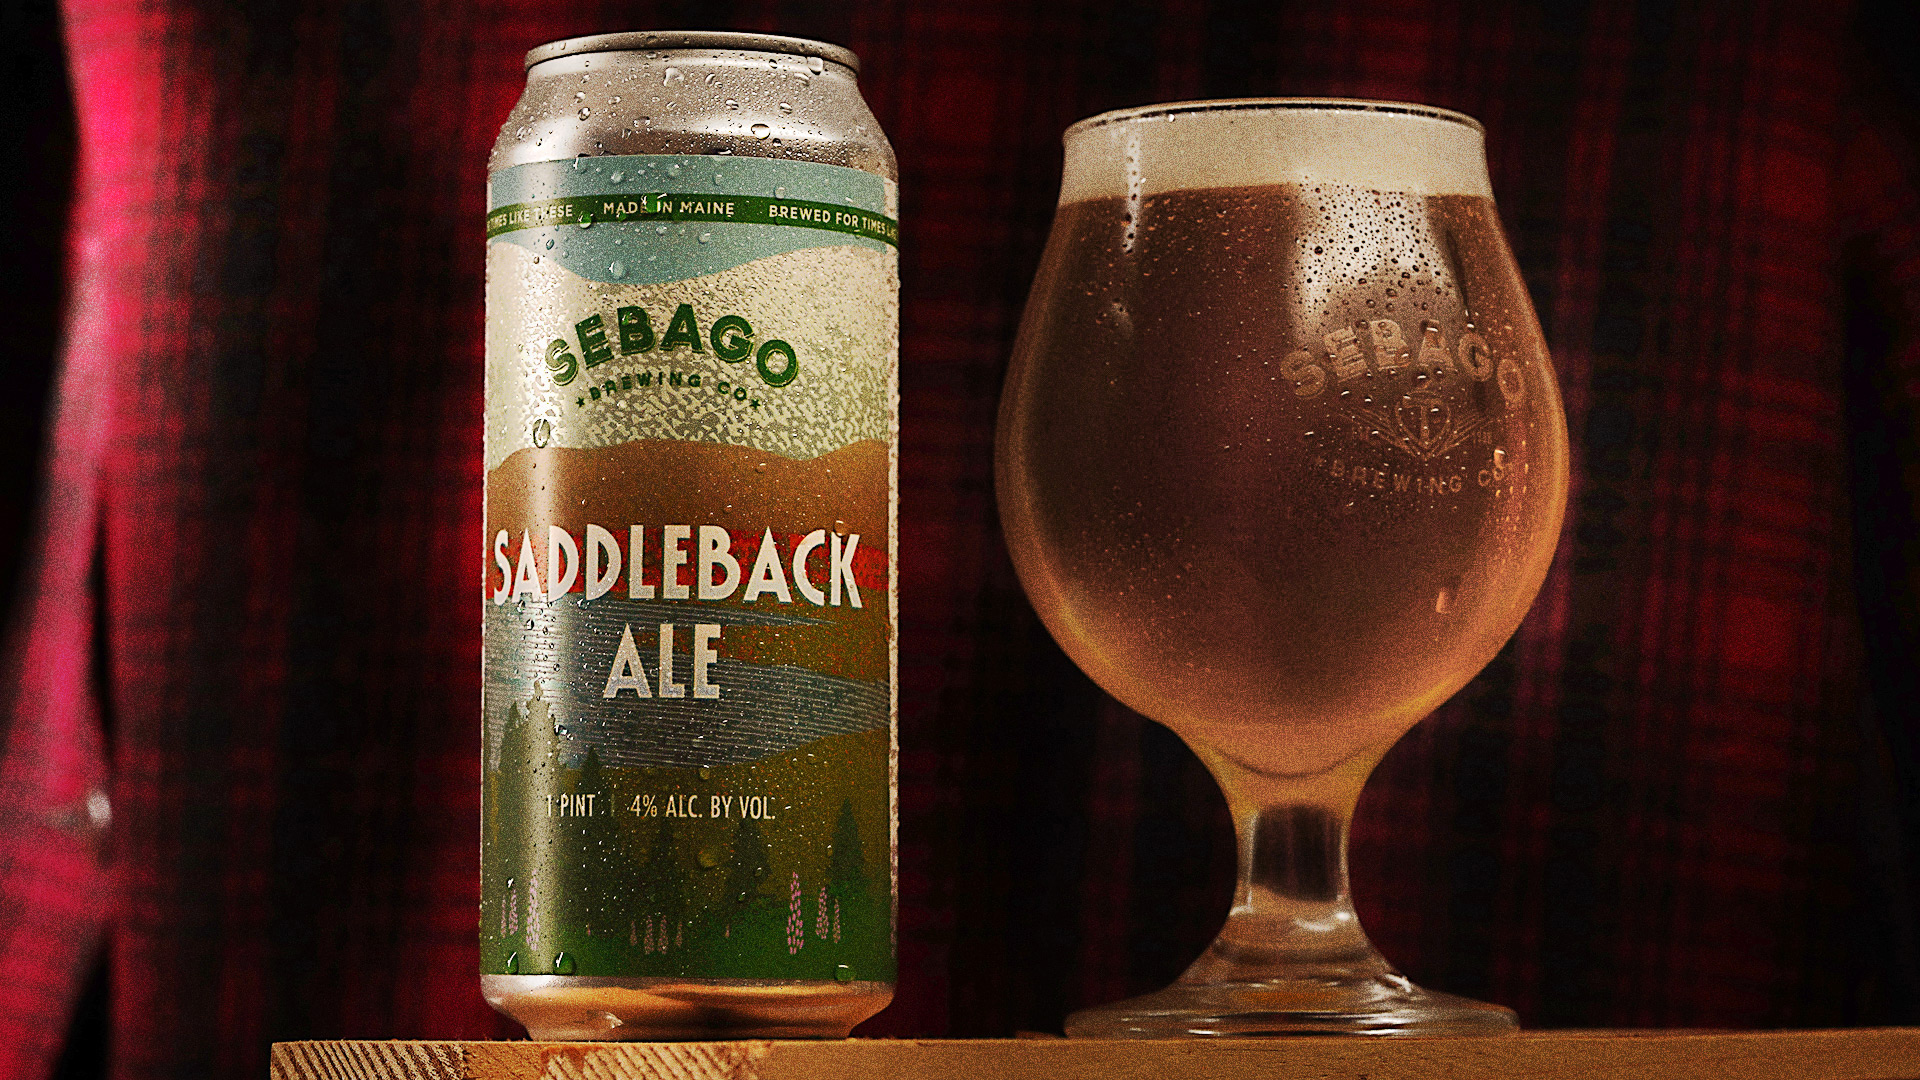 Saddleback Ale Sebago Brewing